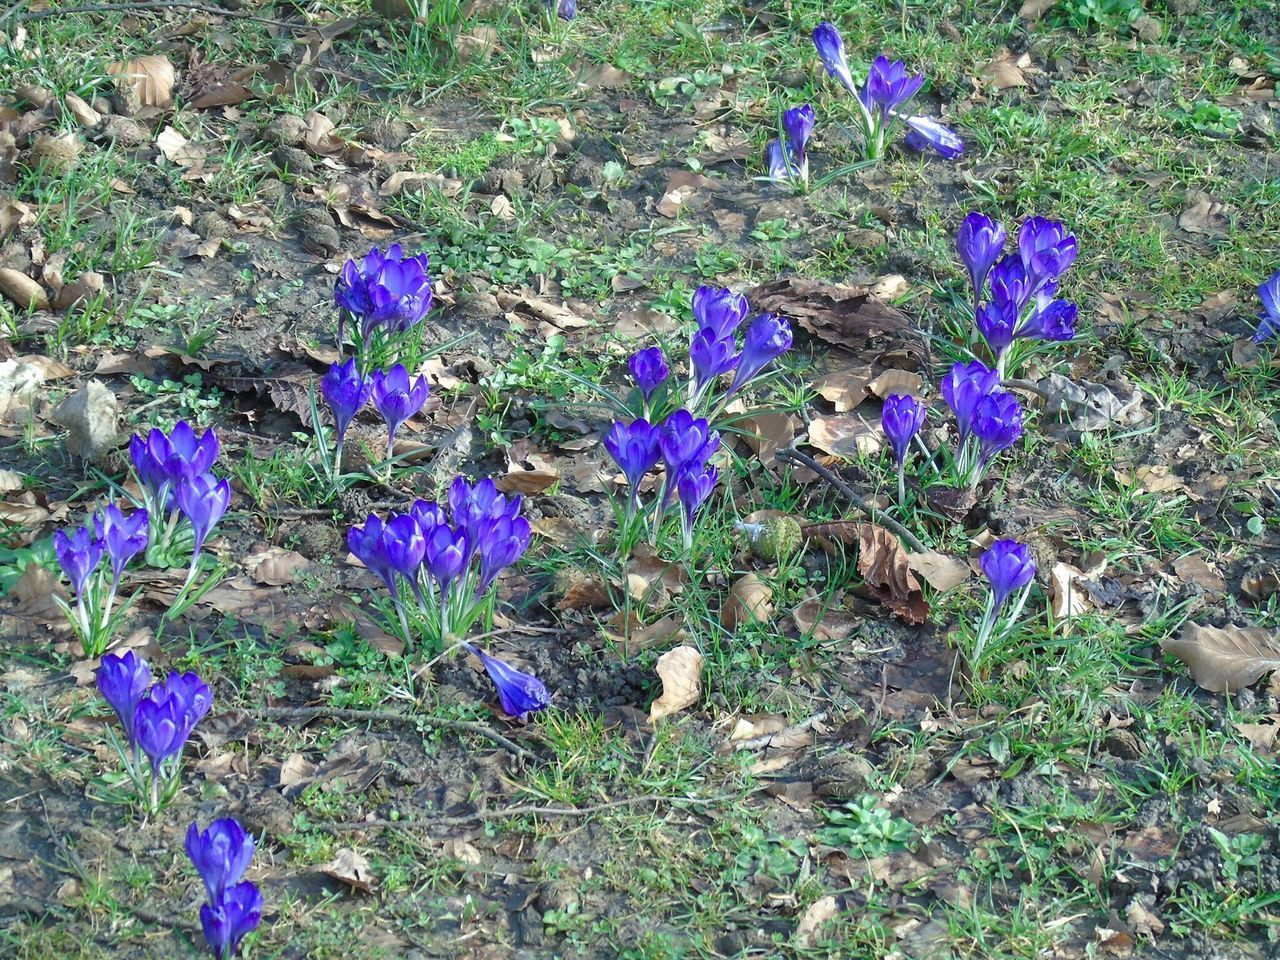 flower, purple, growth, nature, field, plant, fragility, beauty in nature, petal, high angle view, no people, outdoors, day, crocus, freshness, flower head, blooming, grass